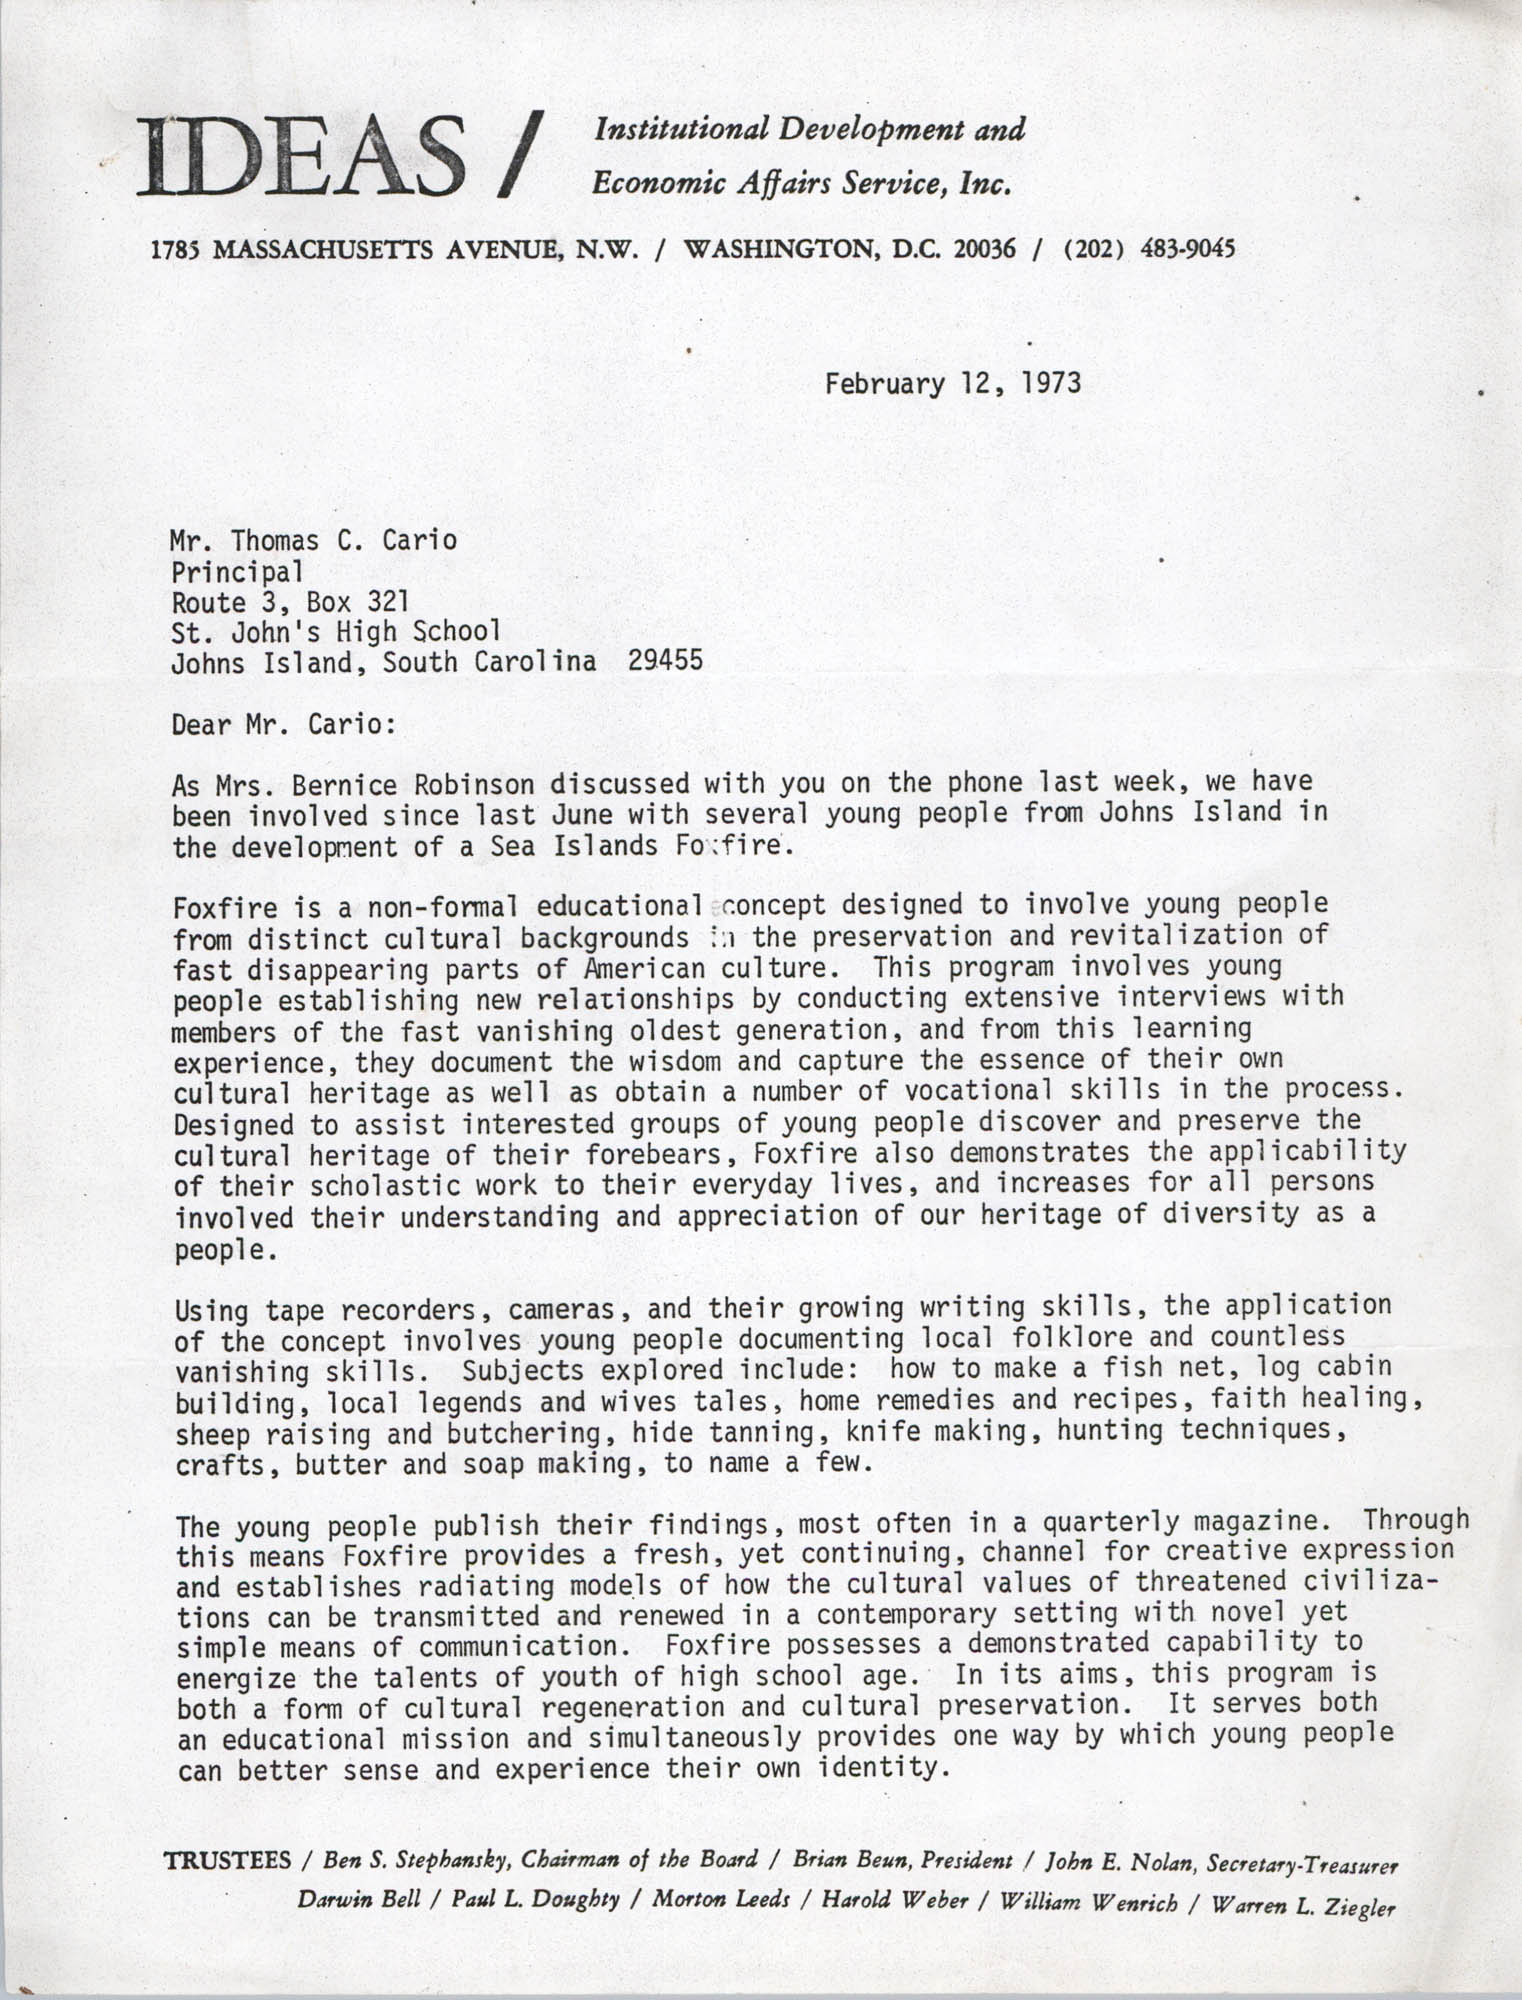 Letter from Ann Vick to Thomas C. Carlo, February 12, 1973